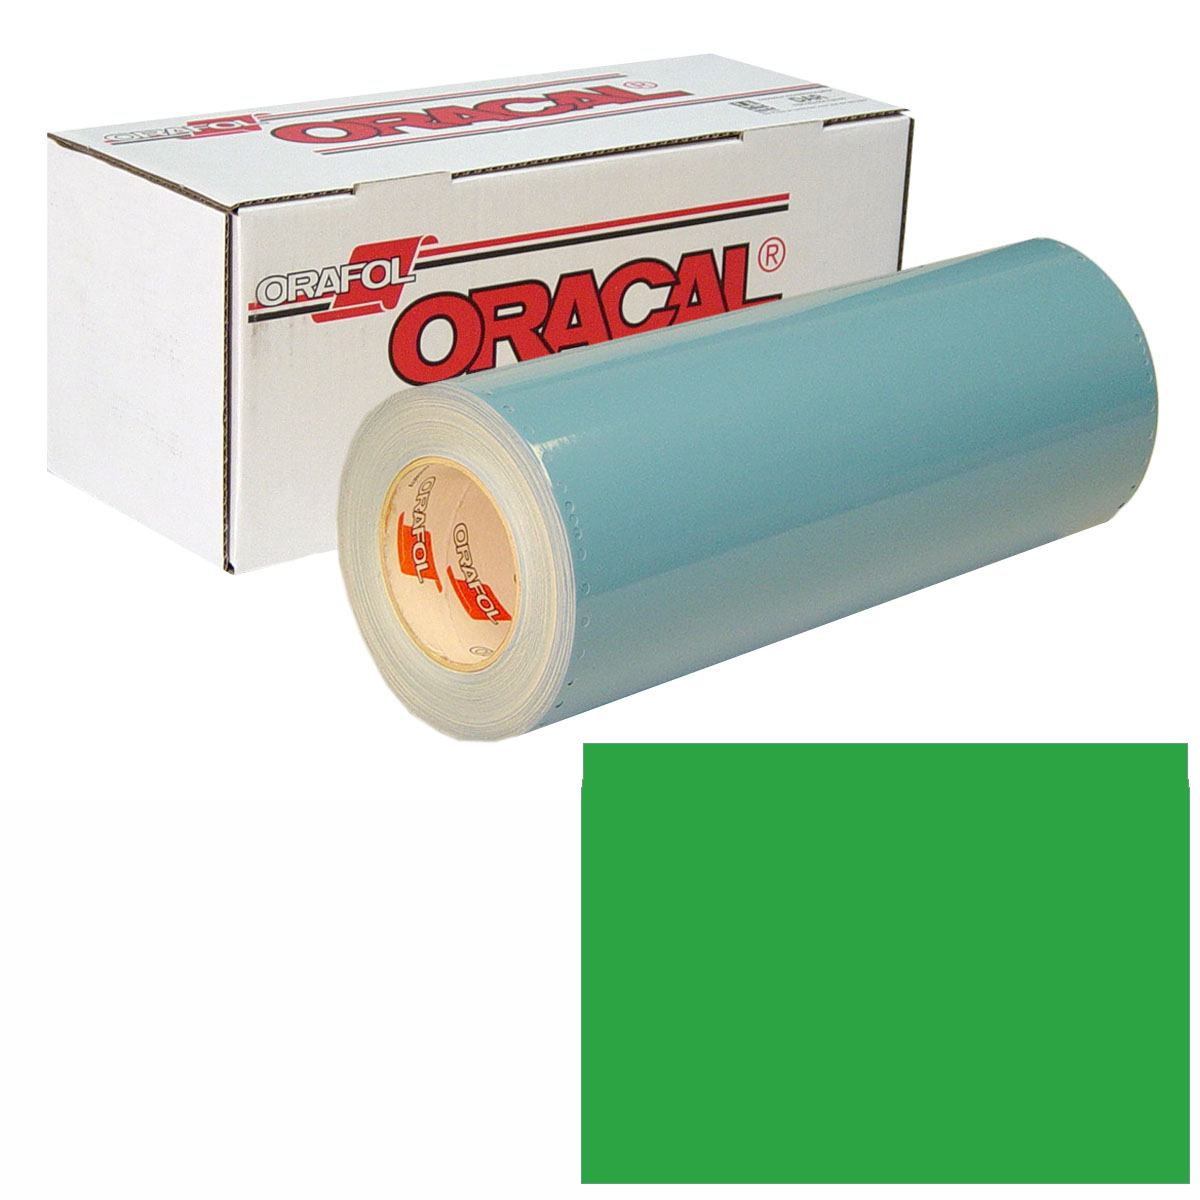 ORACAL 751 Unp 24in X 50yd 064 Yellow Green